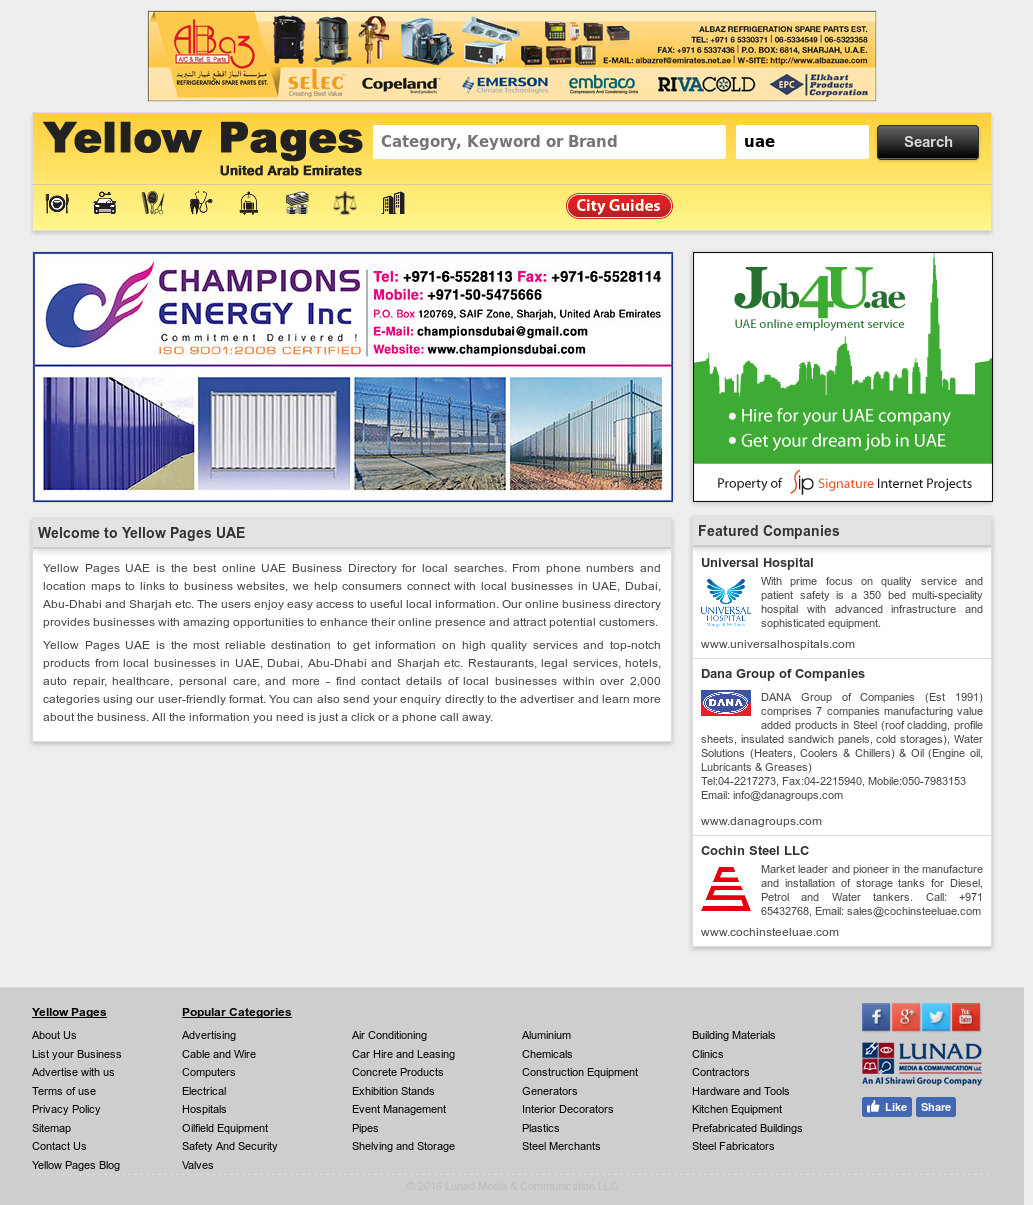 Yellow Pages Uae Competitors, Revenue and Employees - Owler